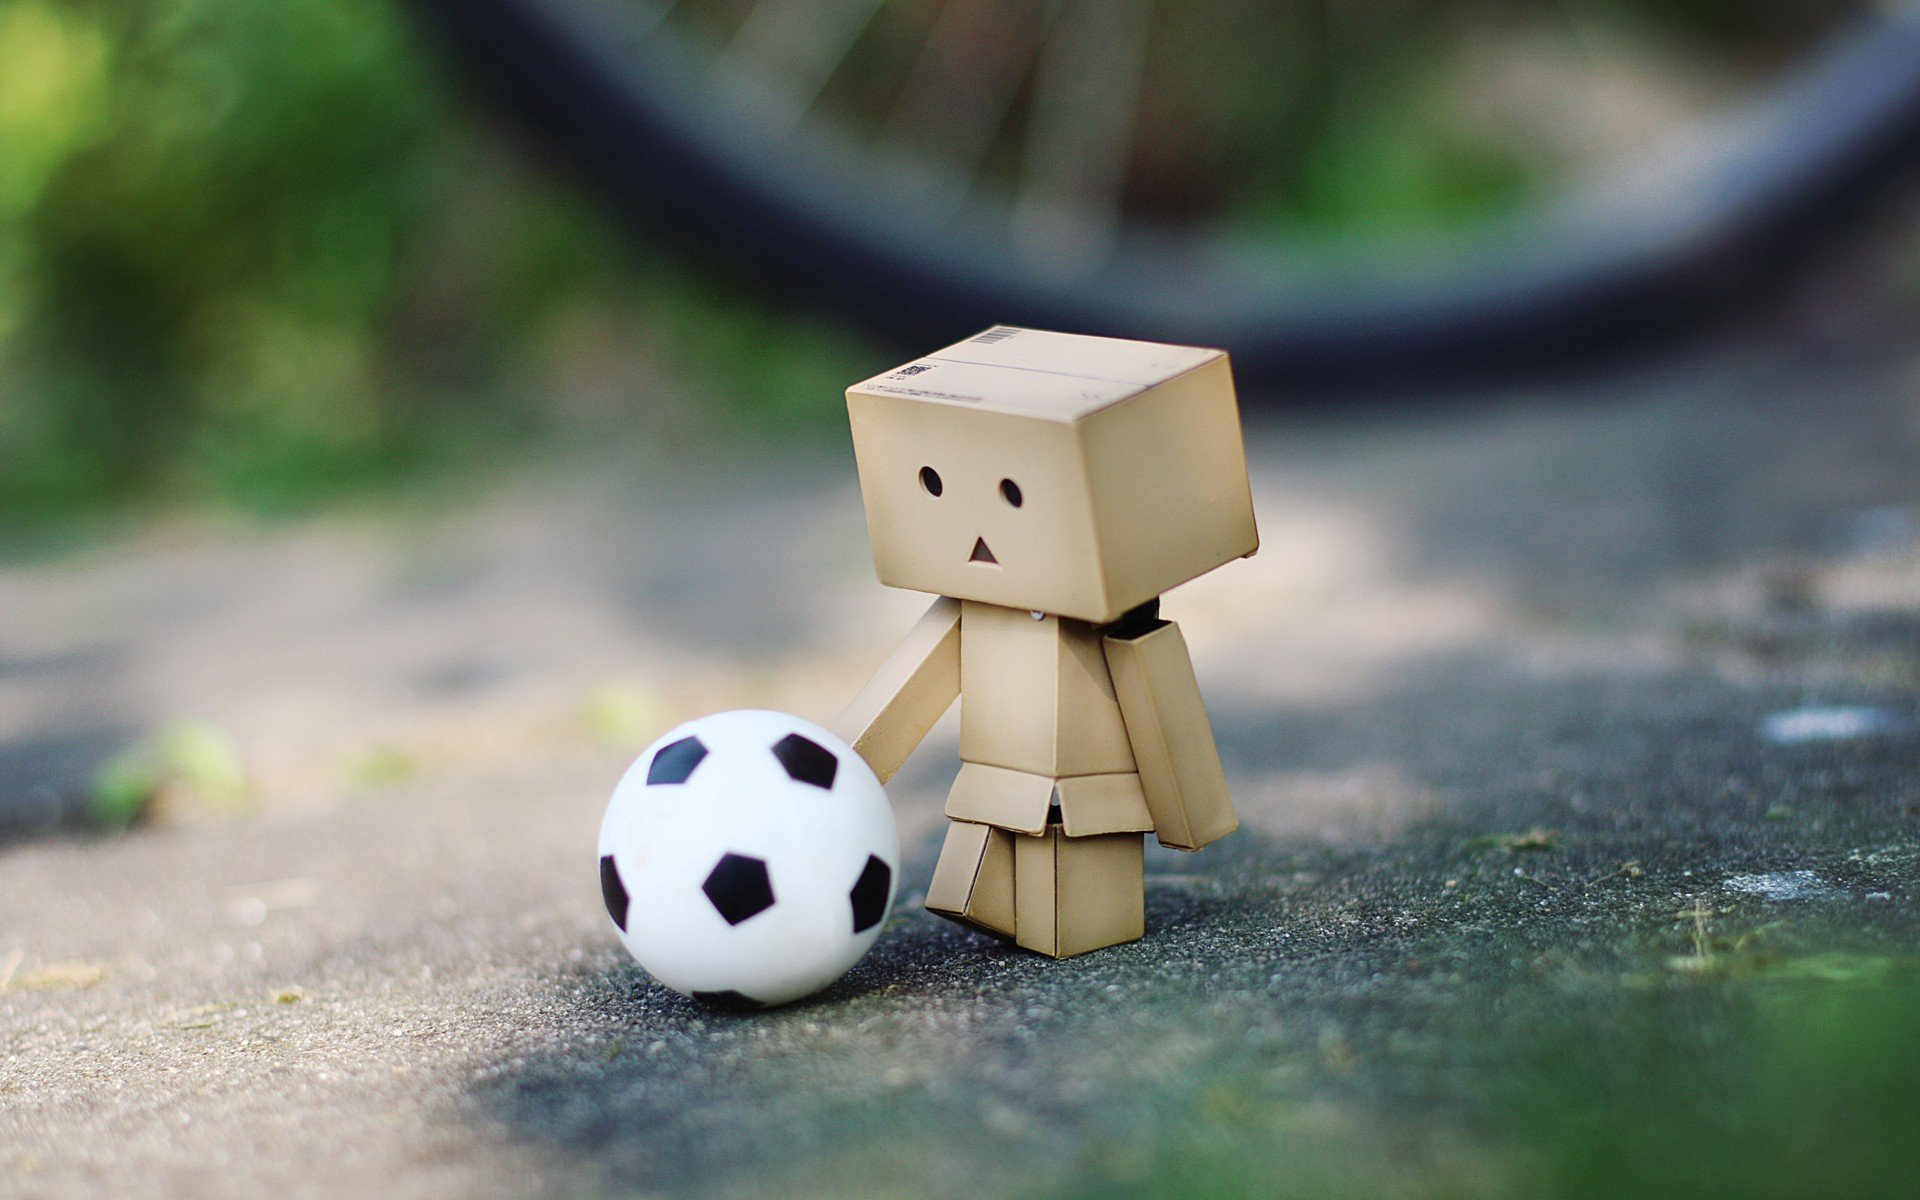 wallpapers soccer wallpaper cool danbo danbosoccer playing 1920x1200